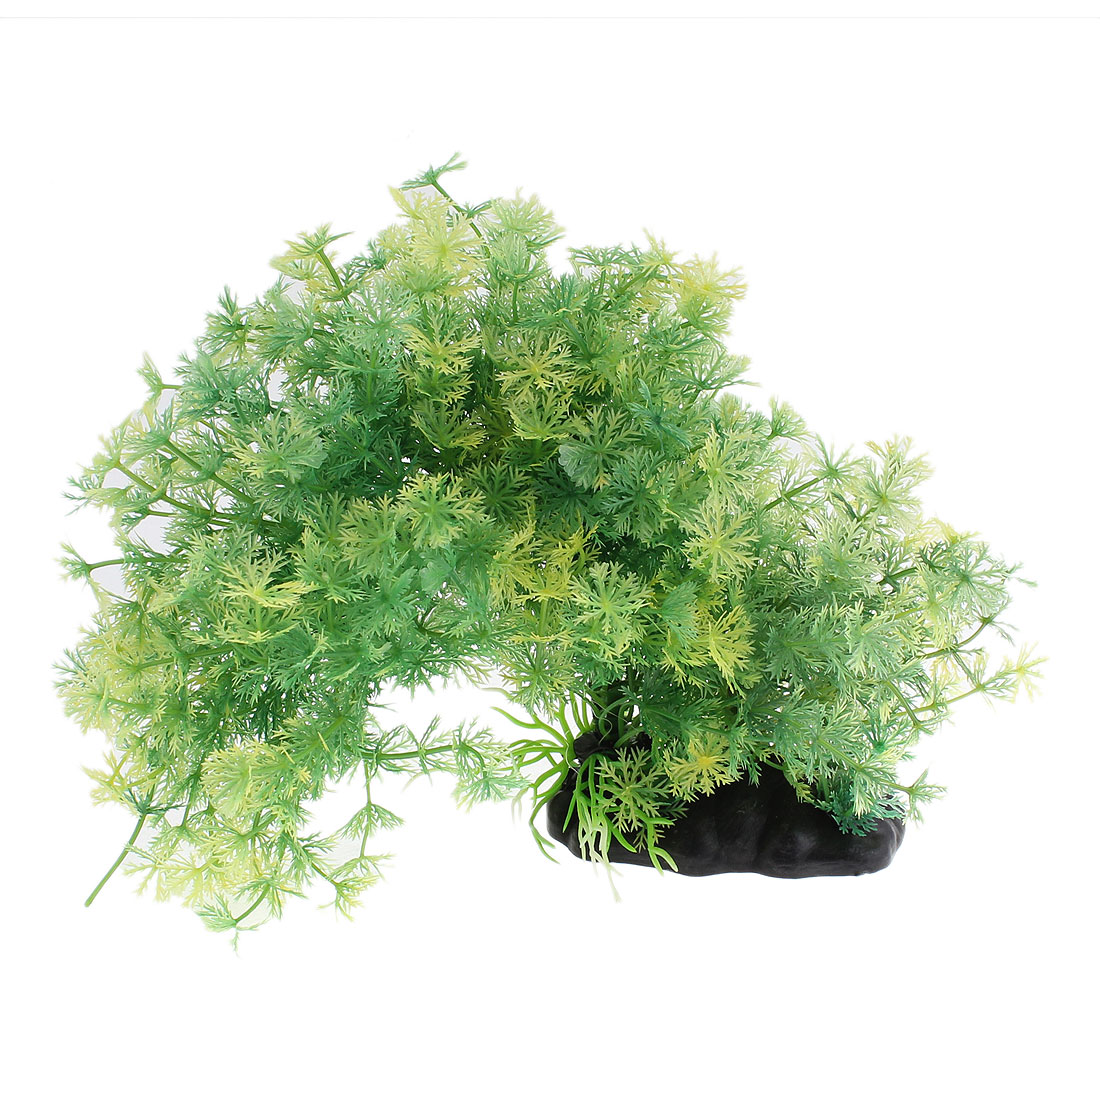 Aquarium Plastic Emulational Underwater Plant Ornament Green 23cm Height